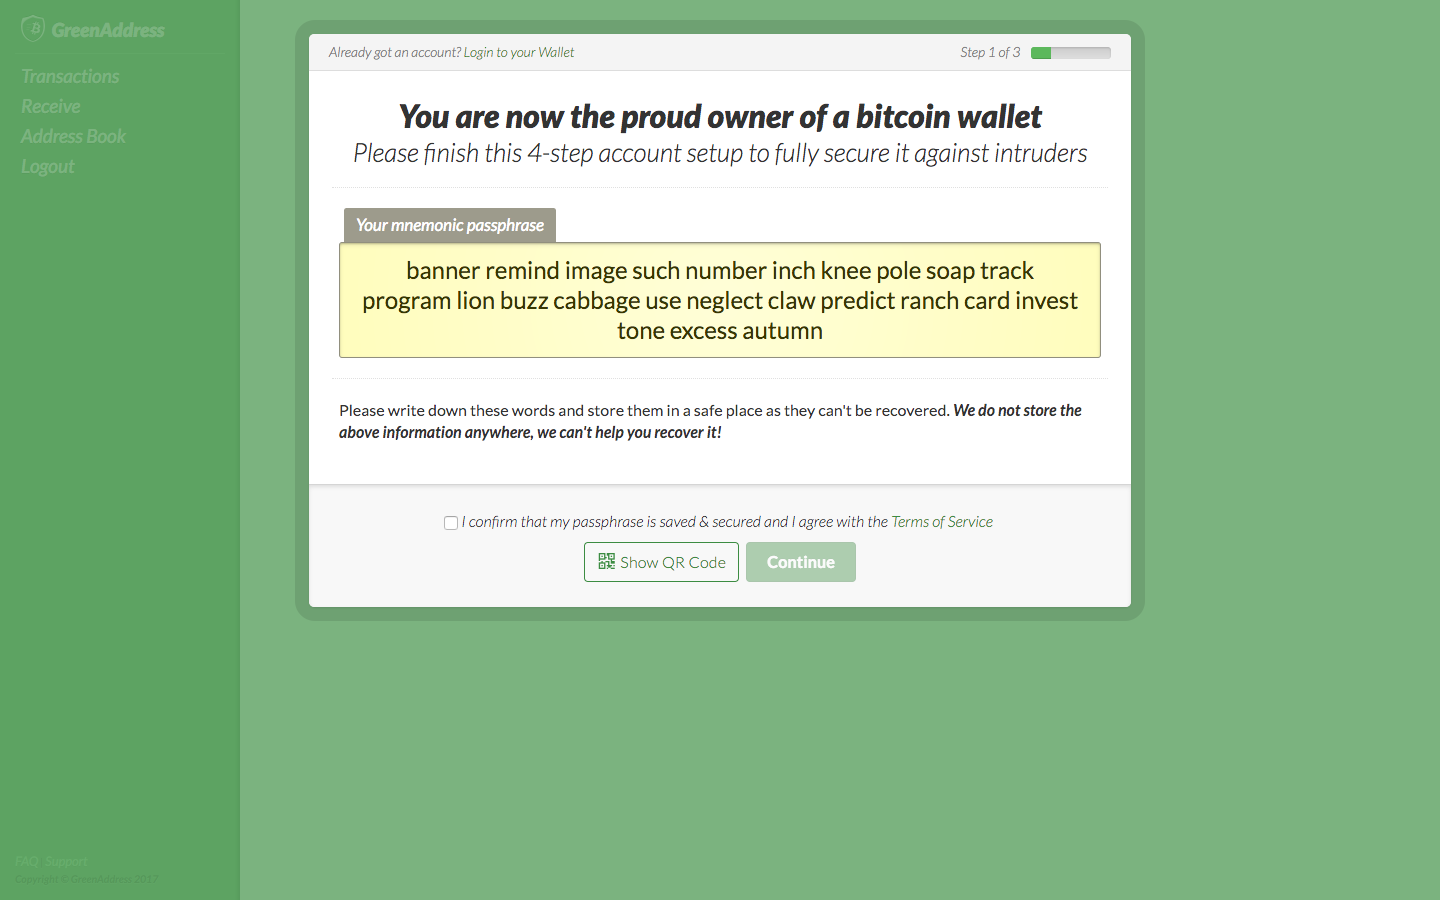 Why You Should Avoid GreenAddress Bitcoin Wallet